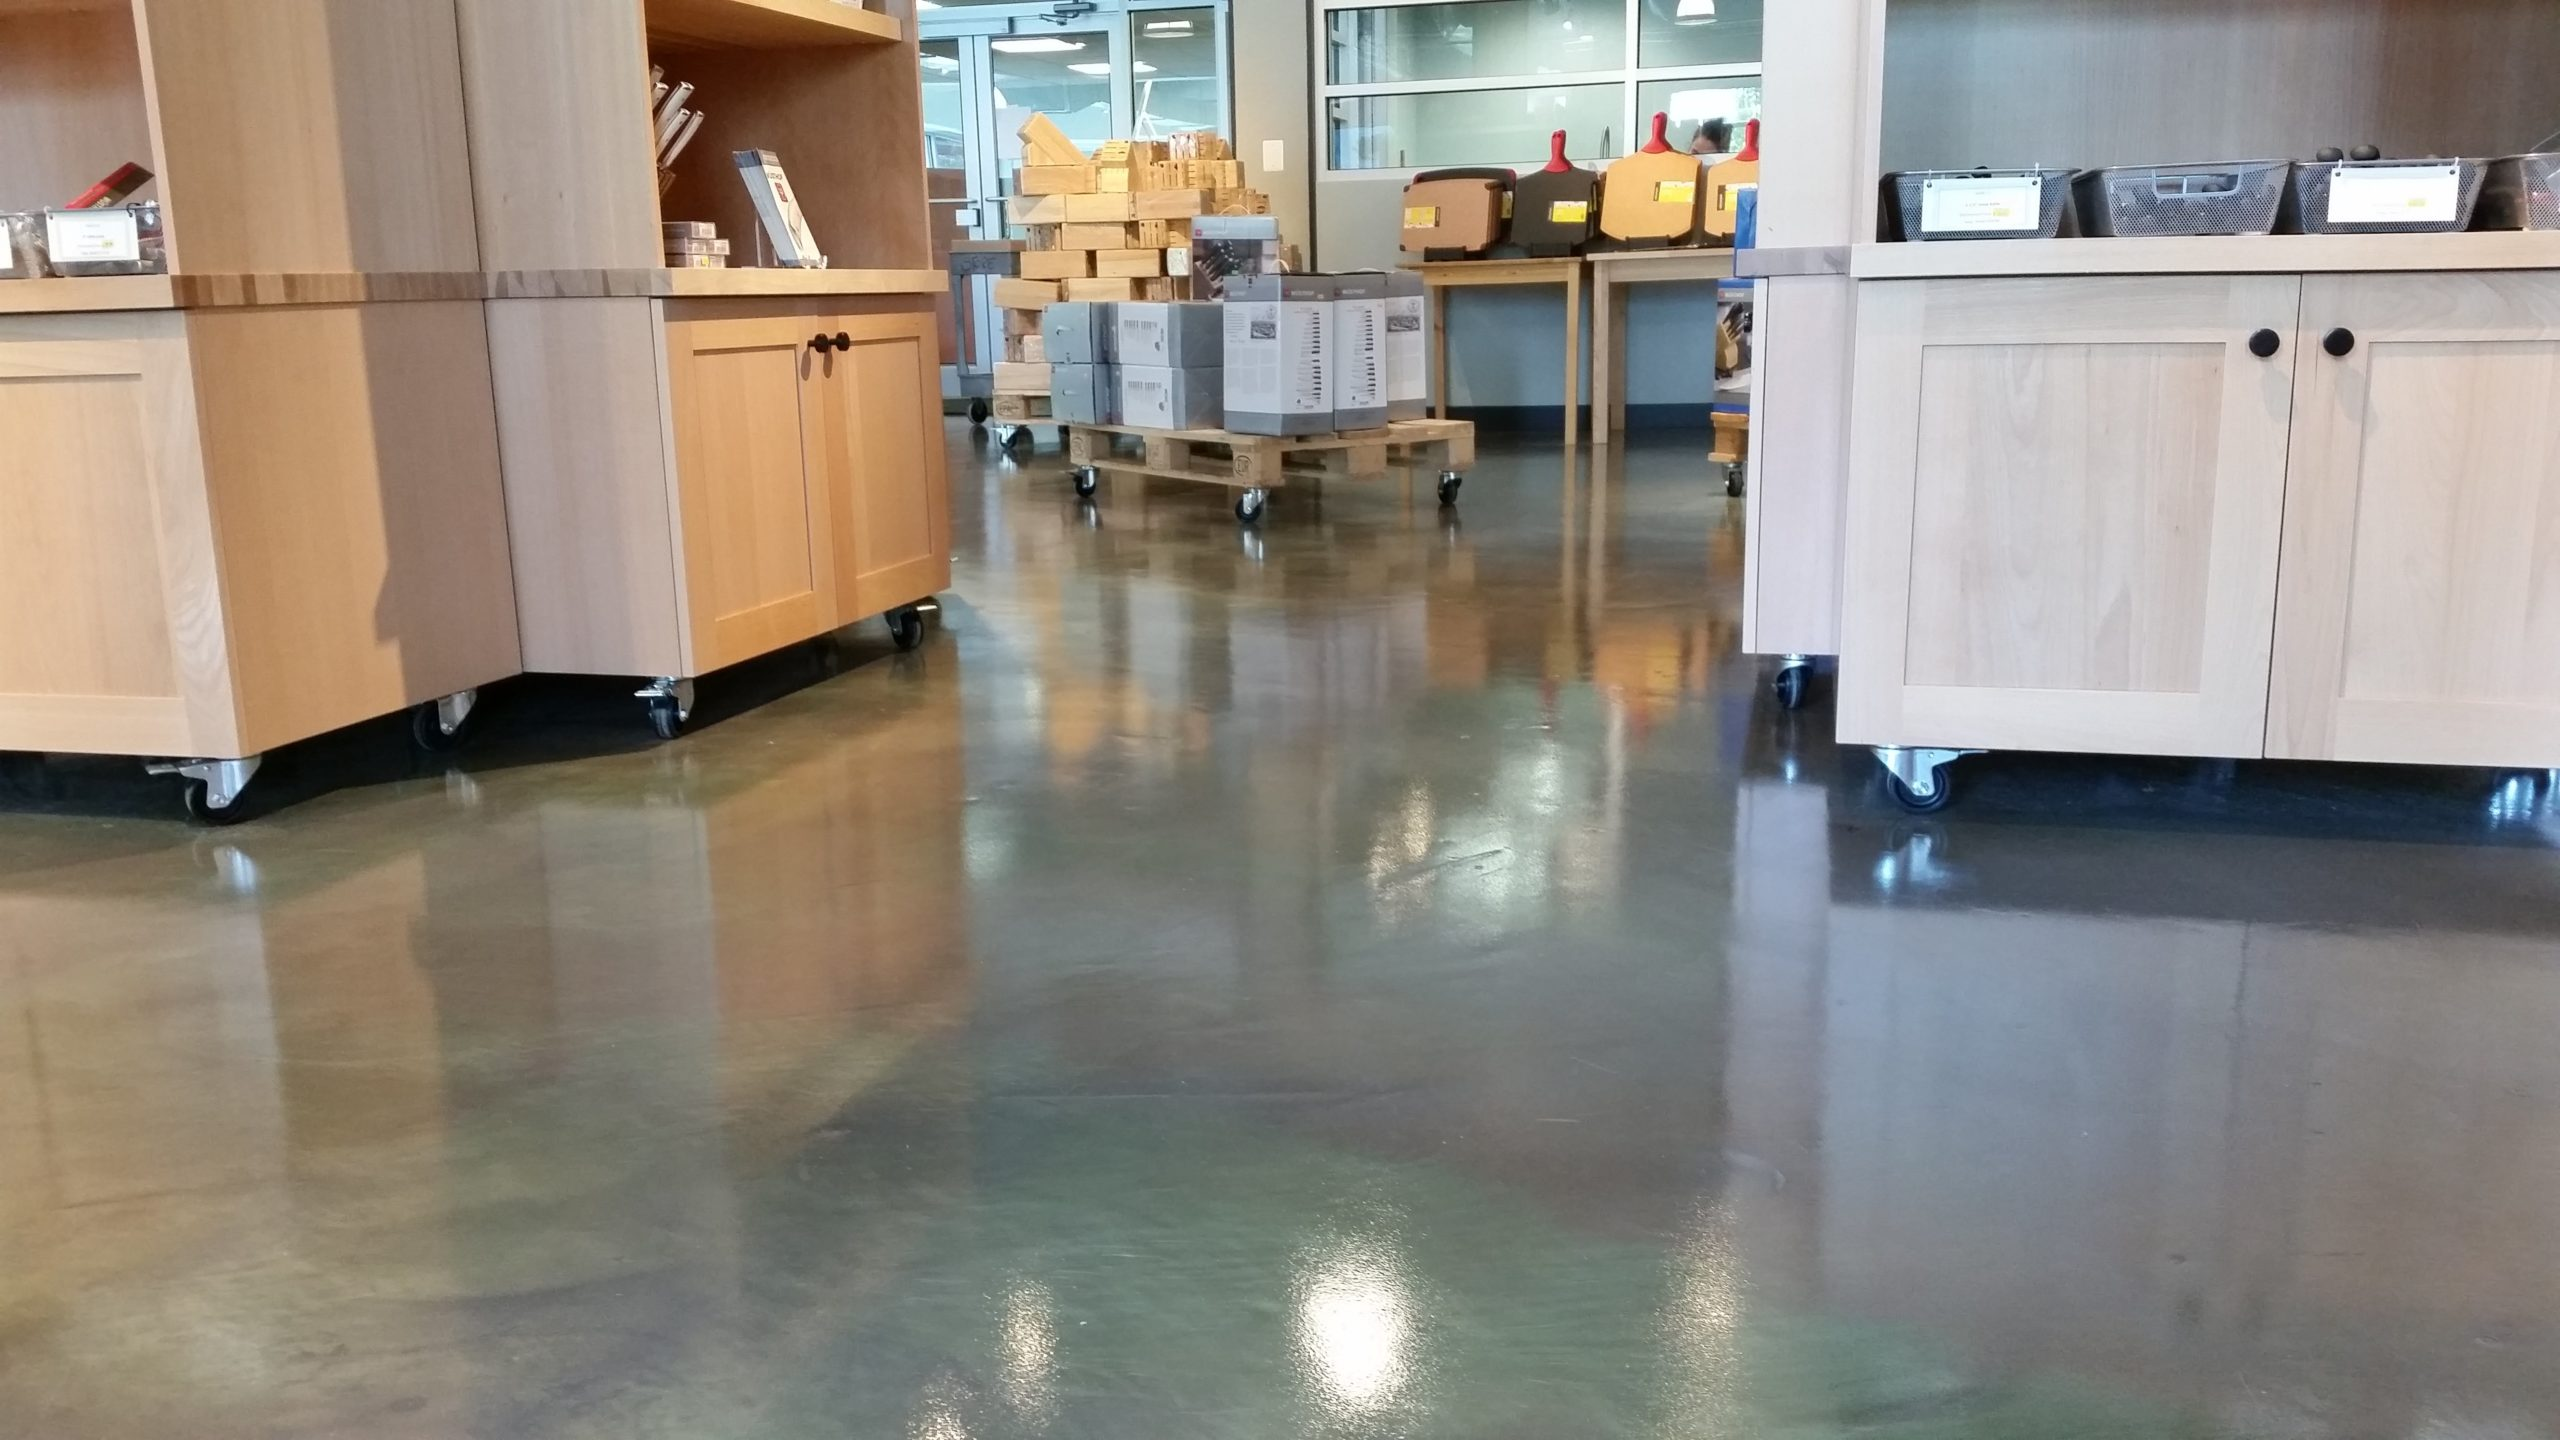 nbspMake a Lasting Impression with Duraamen Decorative Concrete Products | Duraamen Engineered Products Inc